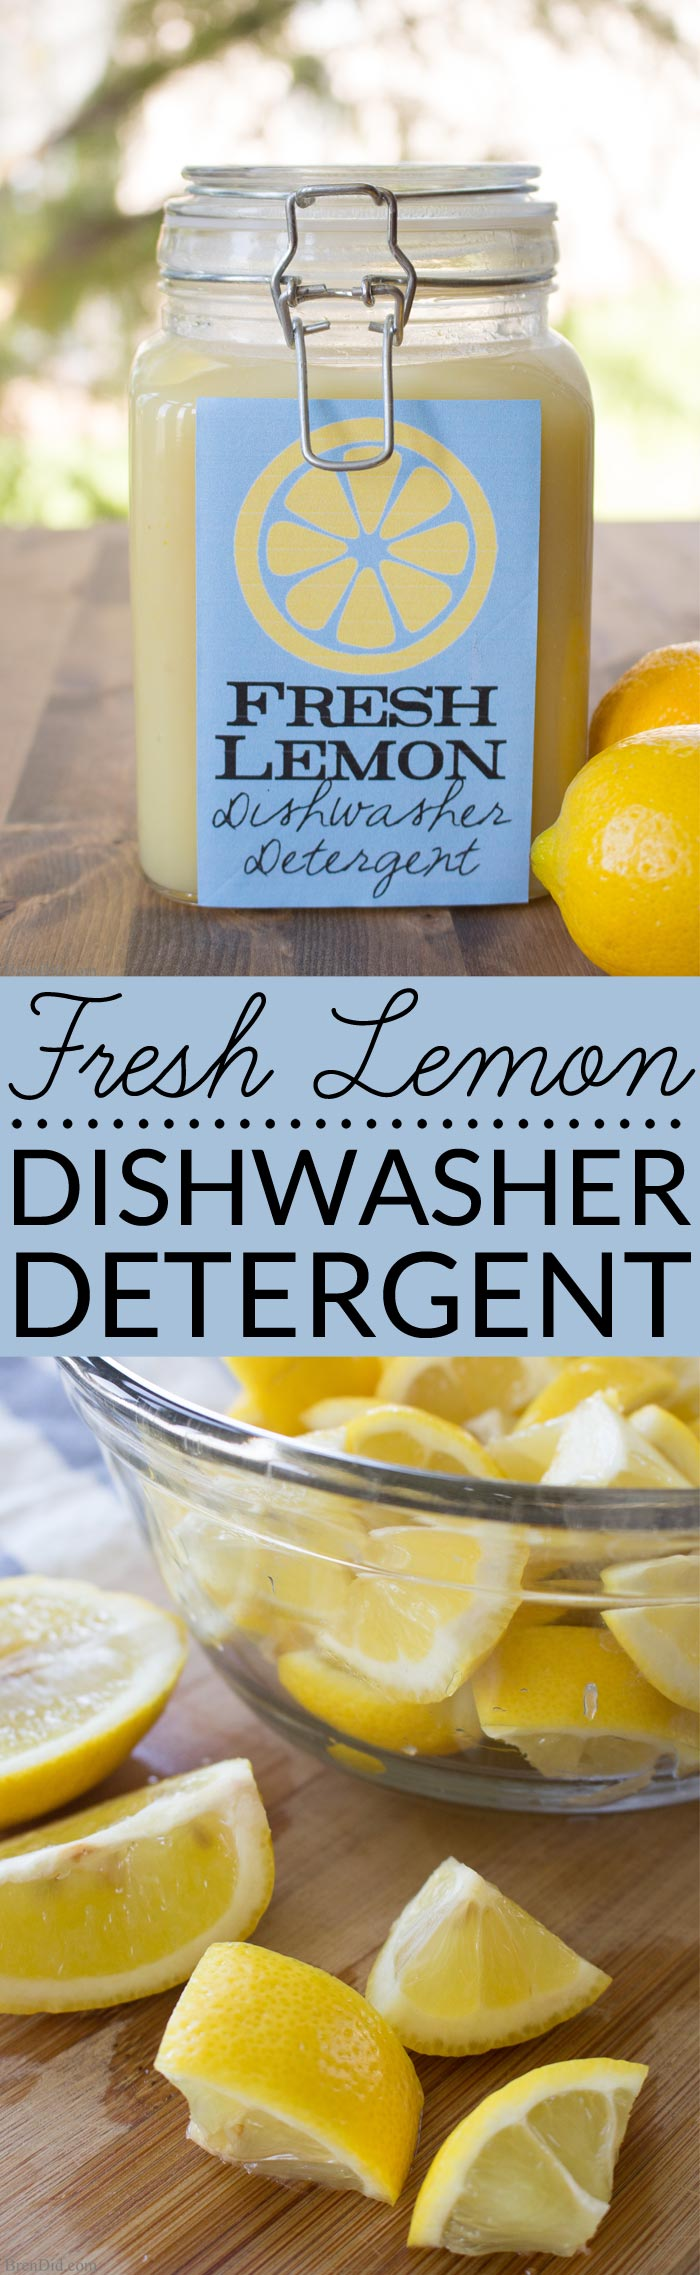 Fresh Lemon Homemade Dishwasher Detergent - Bren Did